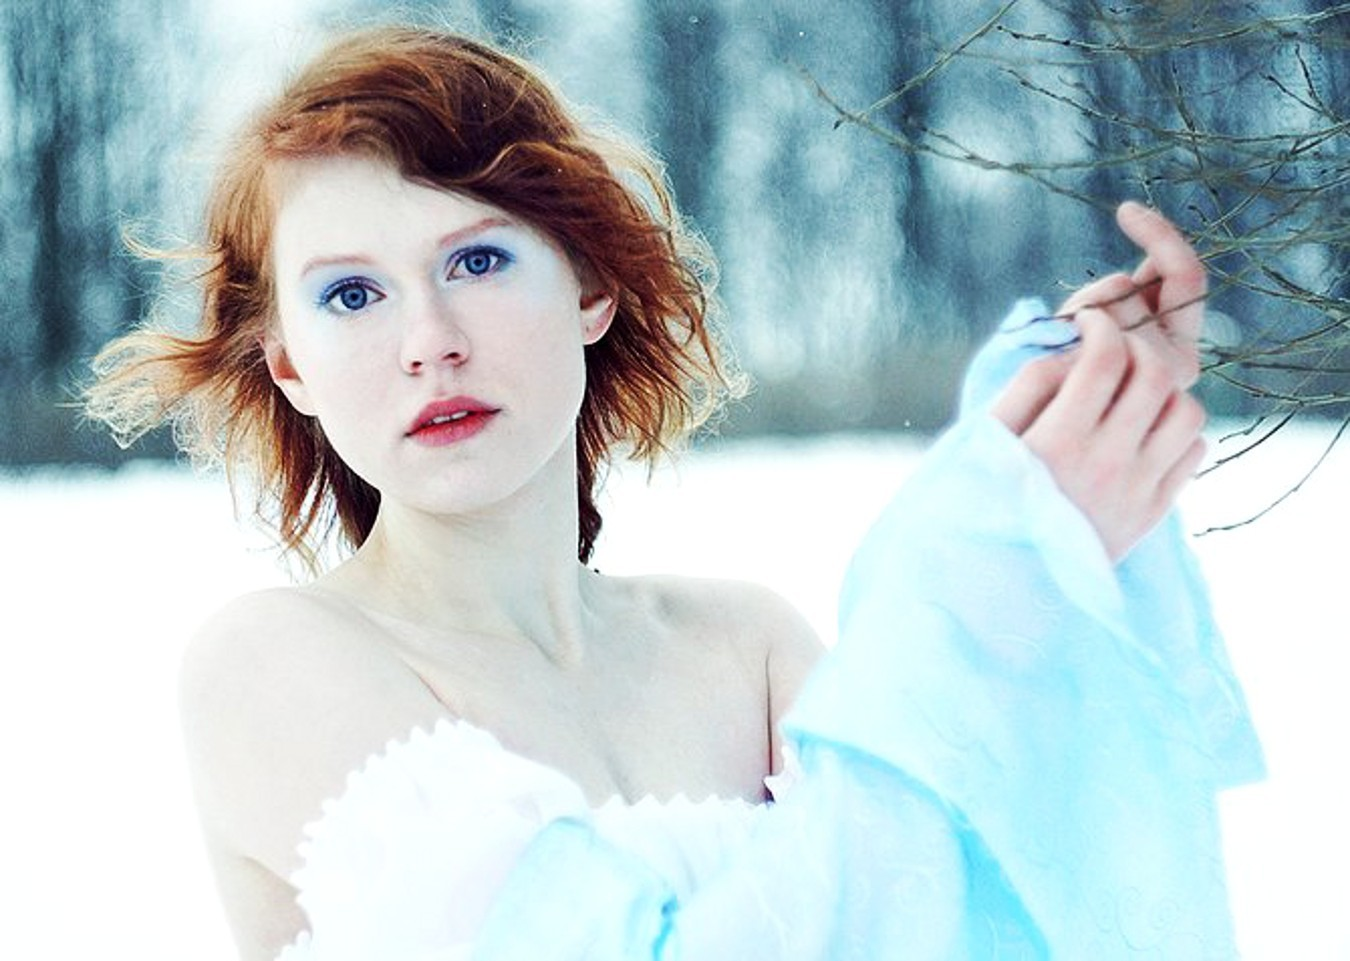 woman snow blue eyes HD Wallpaper